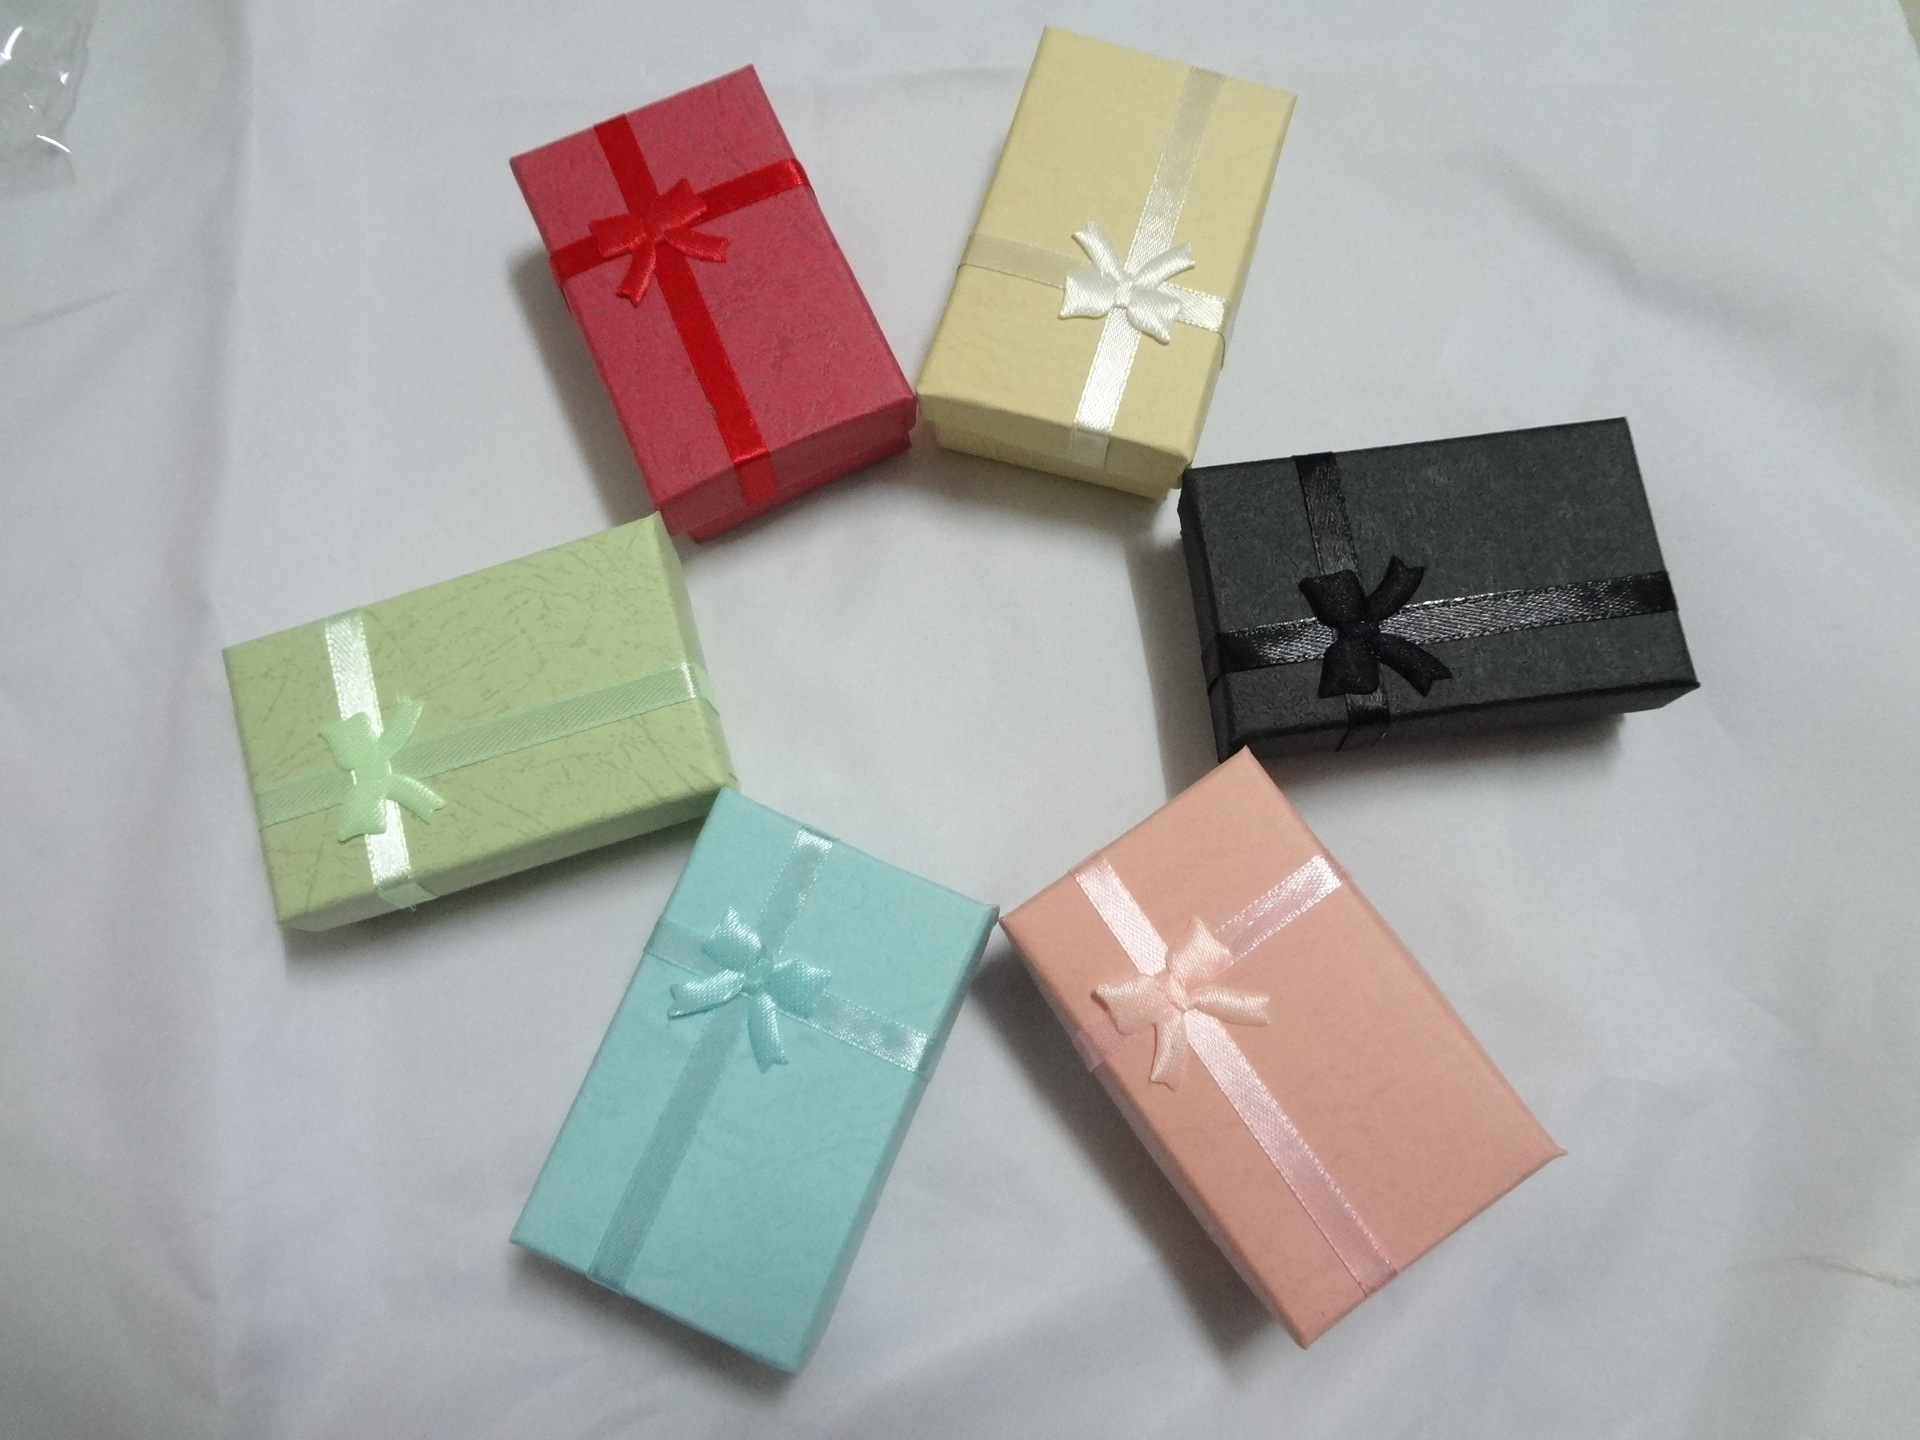 Necklace Bracelet Ring And Other Gift Box With Packaging Material Every Packaging Display Box